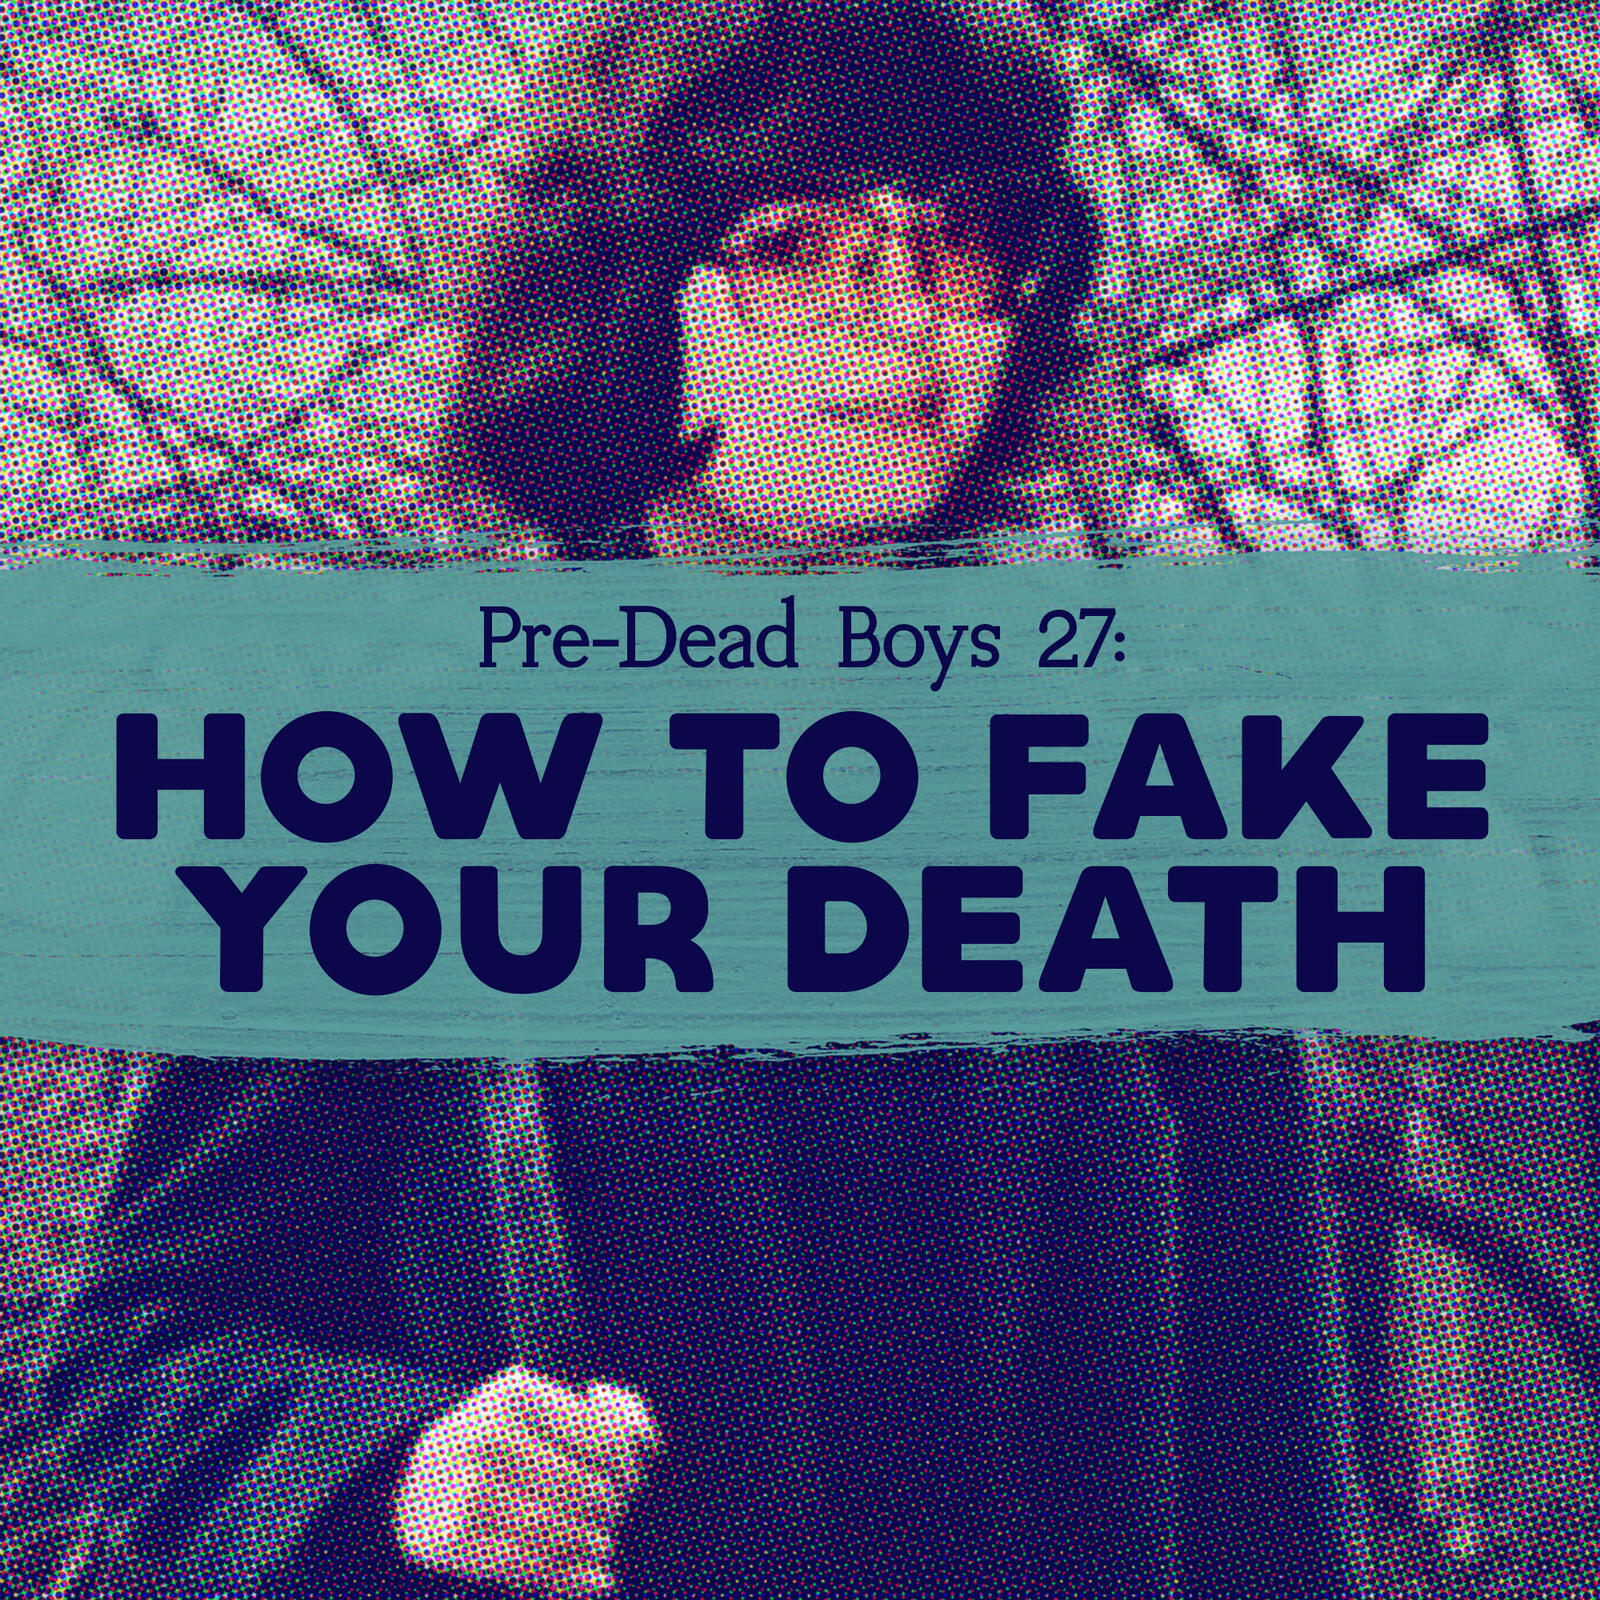 27: How to Fake Your Death